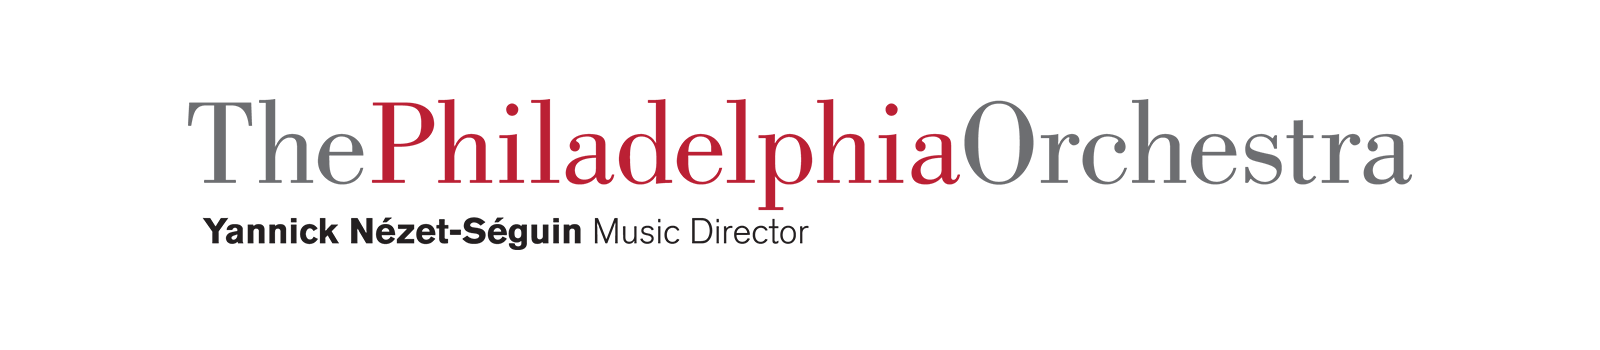 logo_phillyorch_new.png